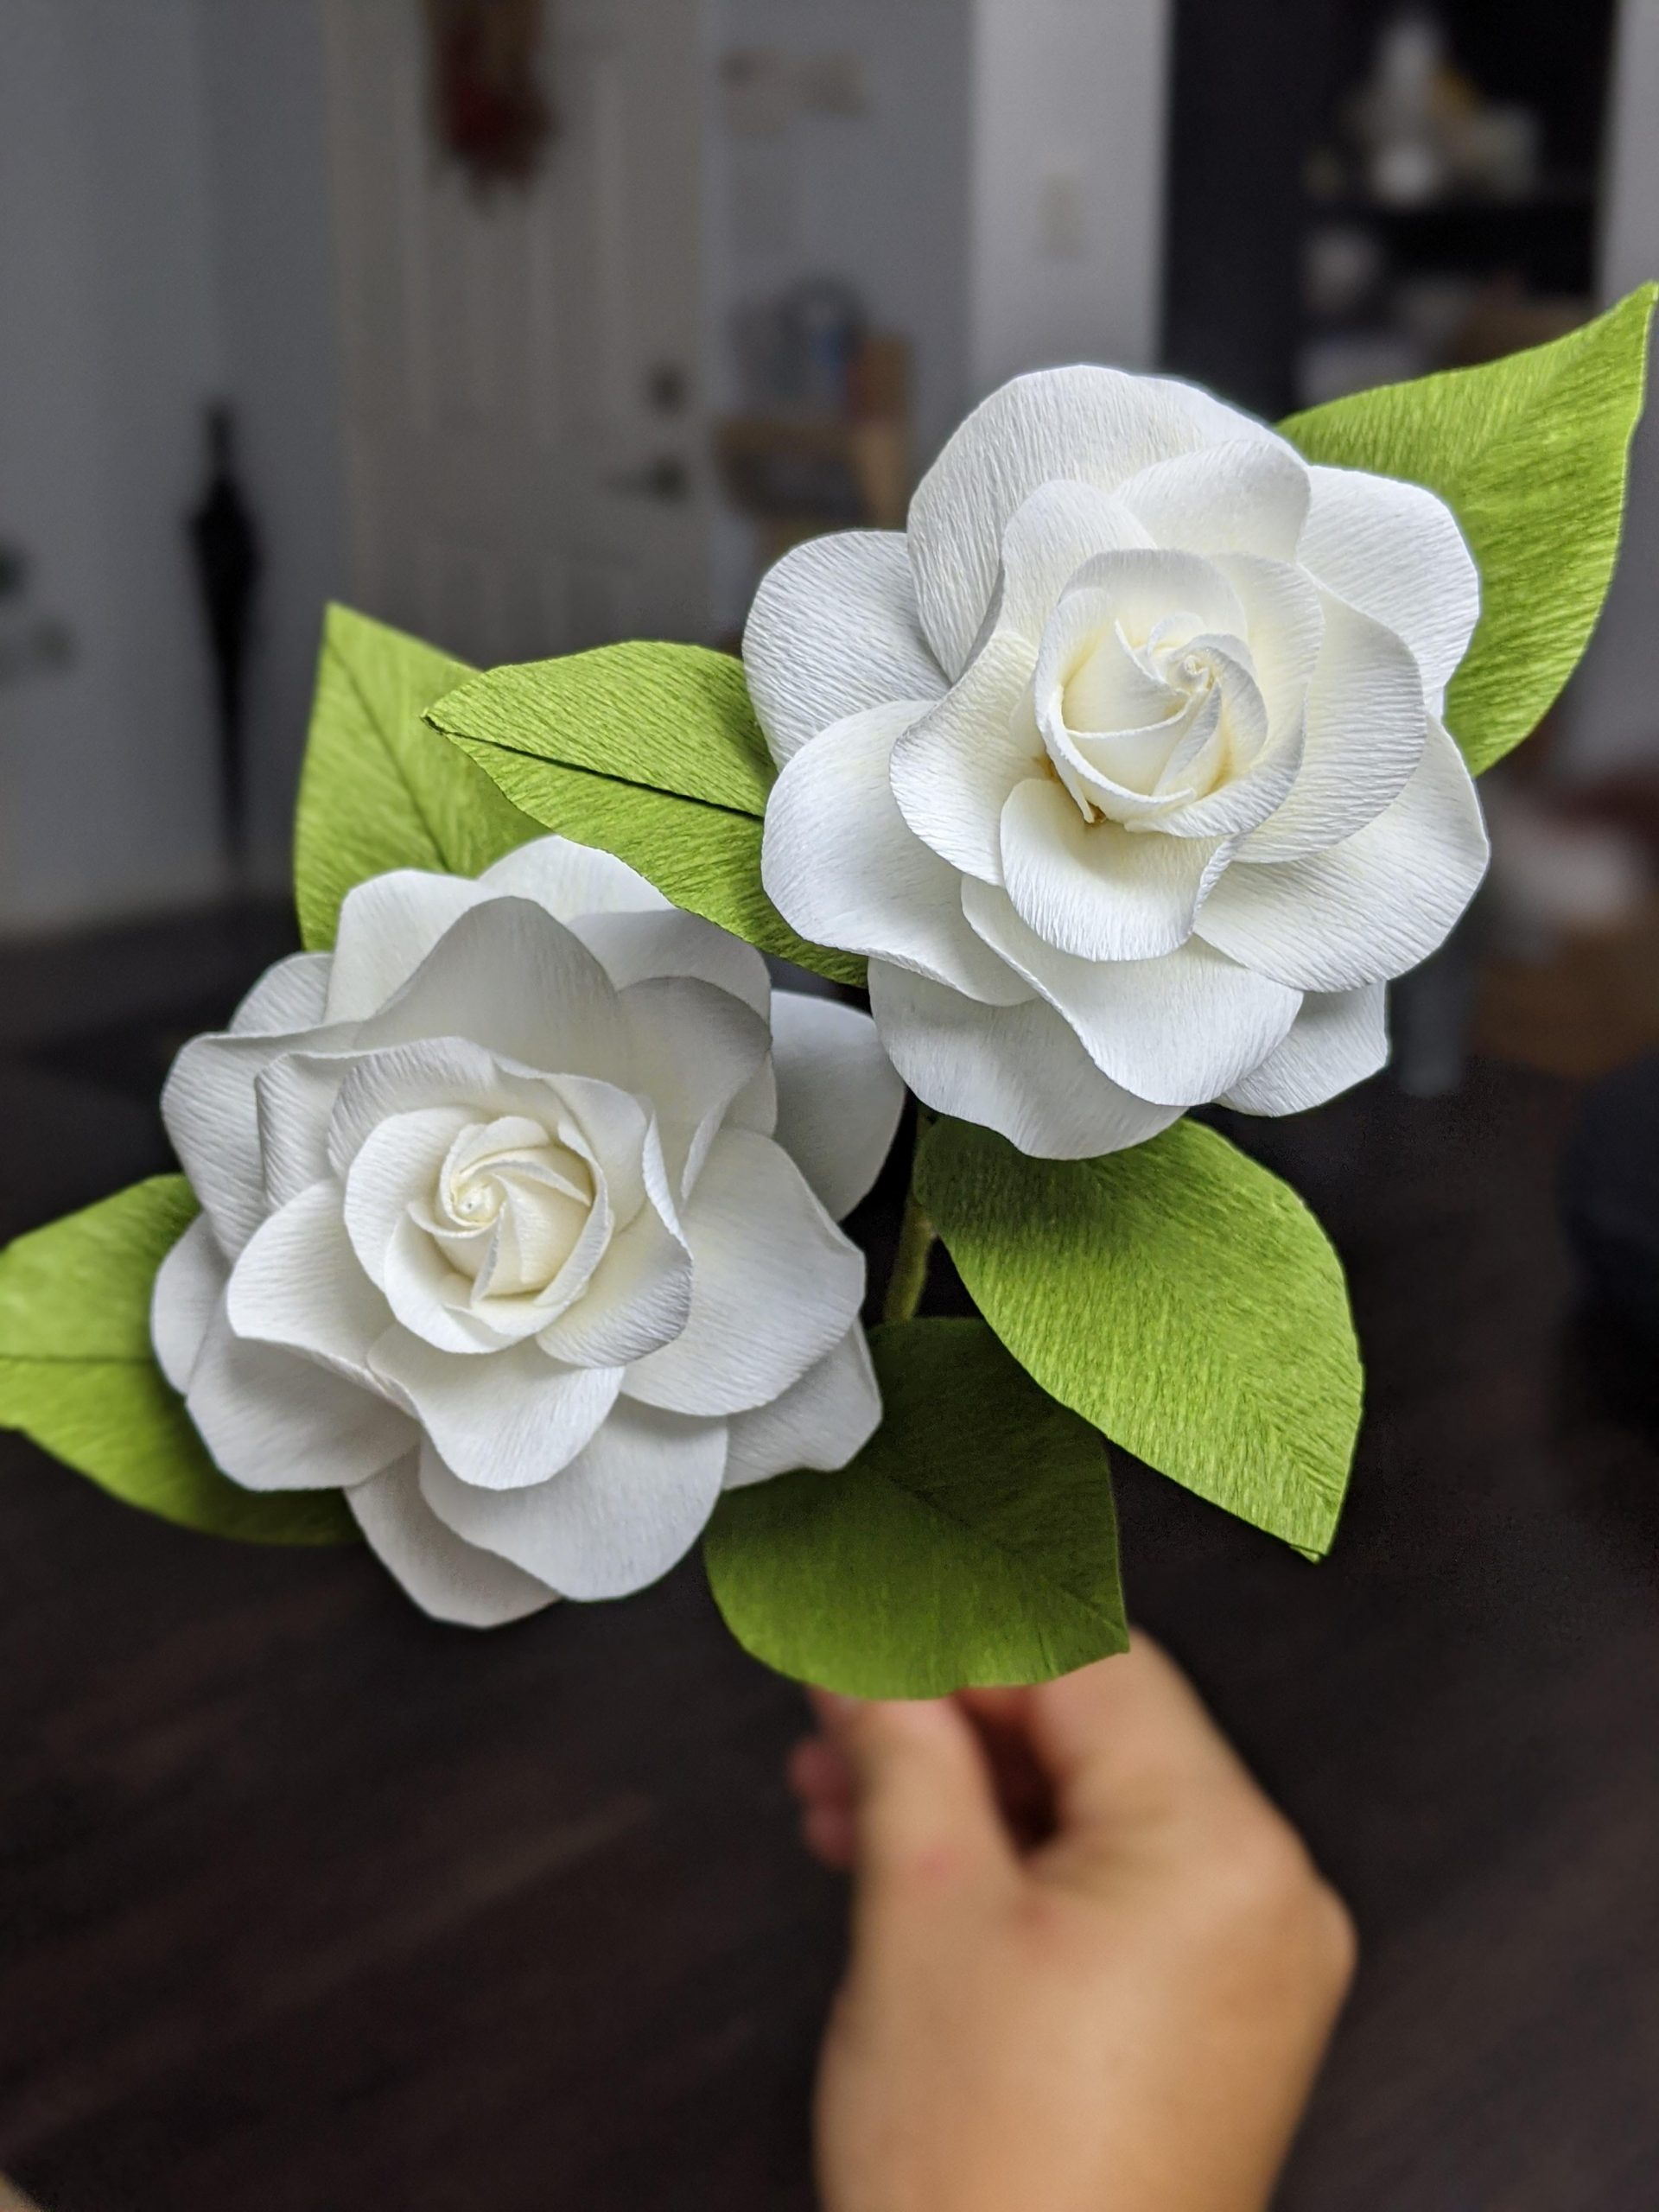 34yoe7d1h8061 scaled - Gardenias I made from paper - hobbies, crafts